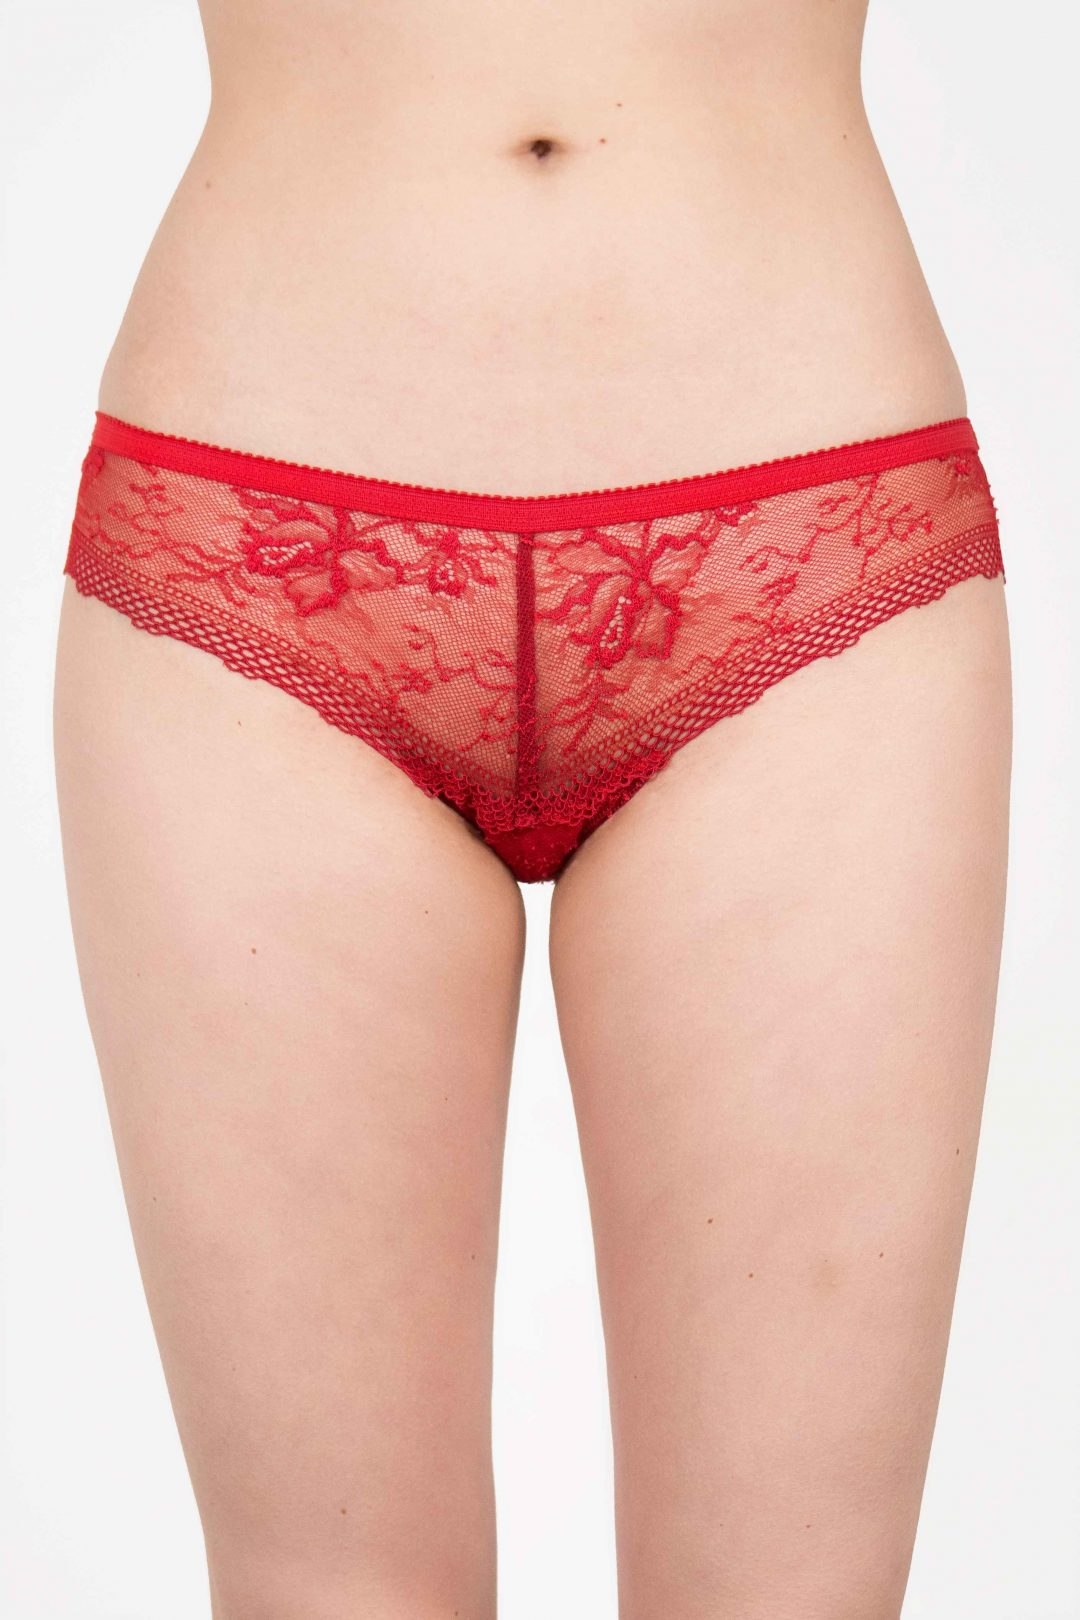 Photo of a very sexy luxurious red lace panties for women | IDentity Lingerie UK